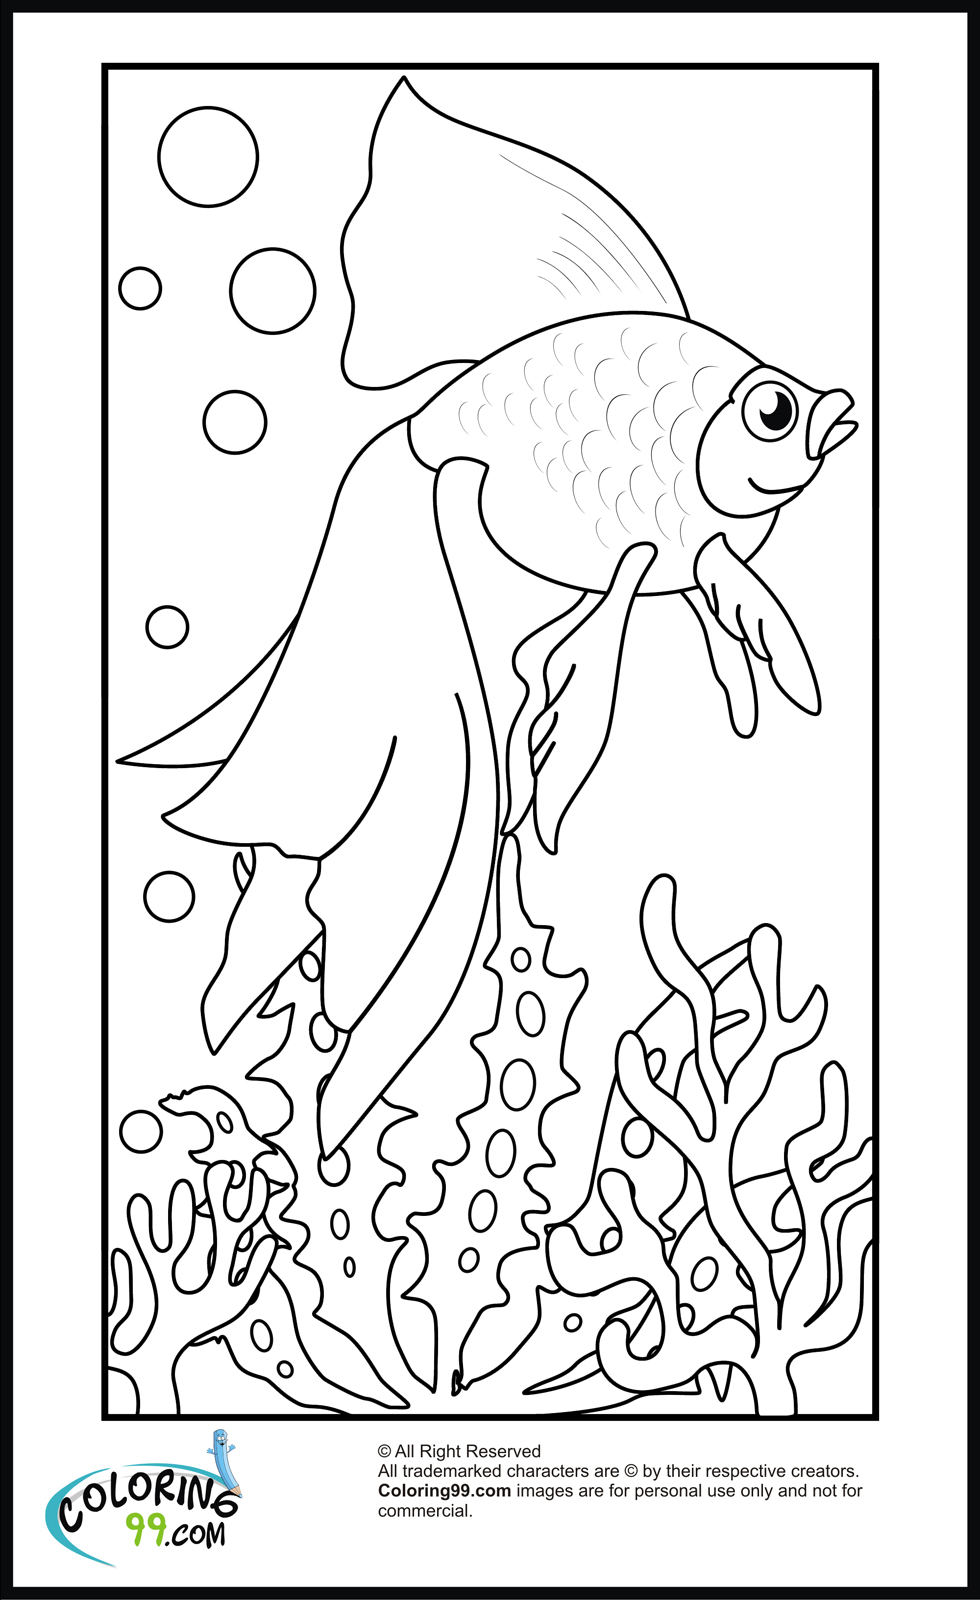 coloring pages free free coloring pages hello kitty coloring pages hello pages coloring free